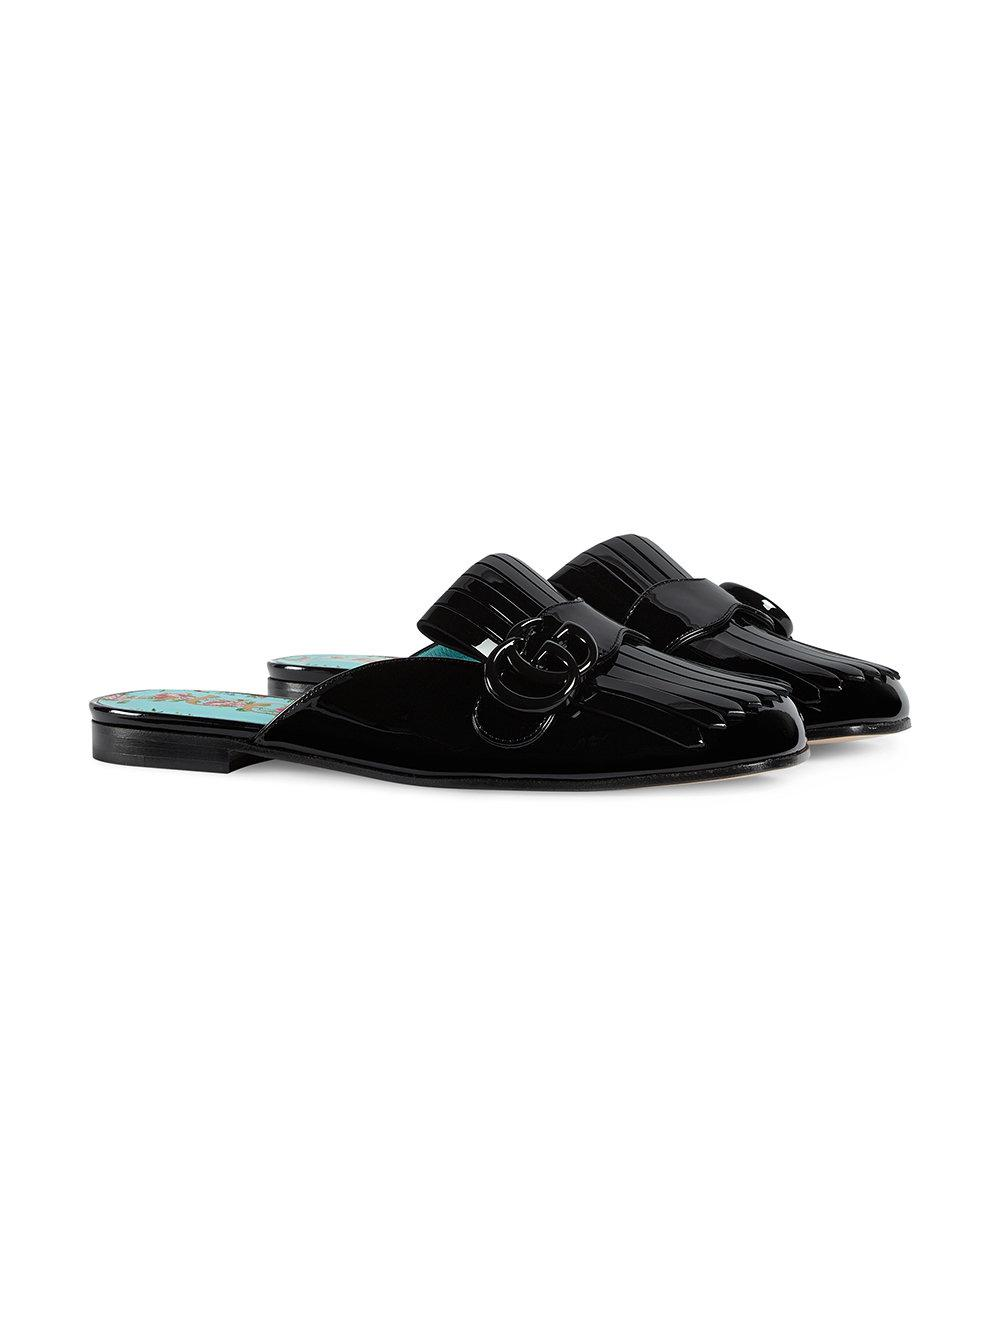 68dbe2913bf Lyst - Gucci Marmont Patent Leather Slipper in Black